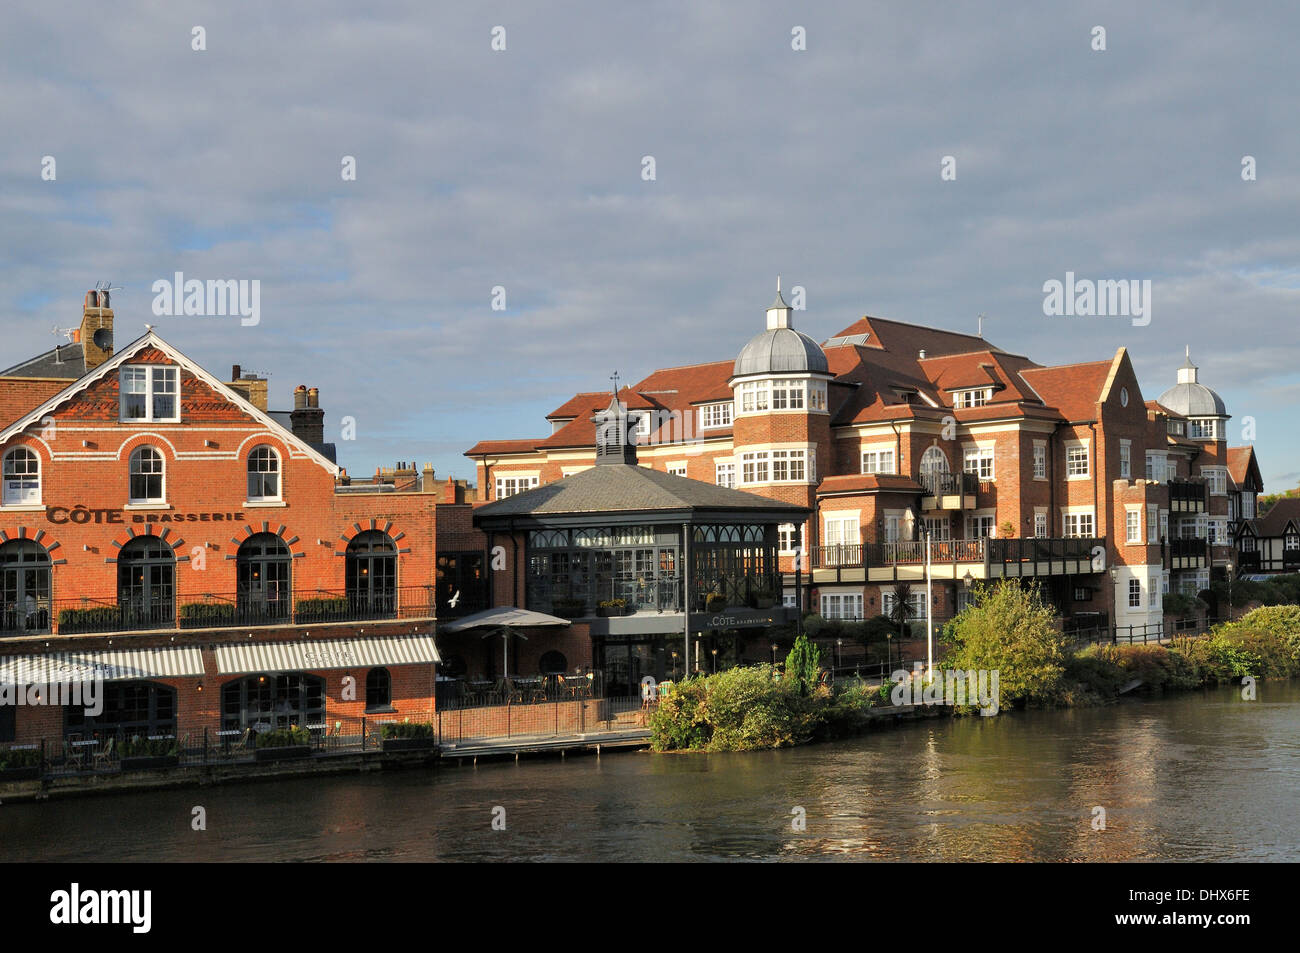 Côte Brasserie Windsor restaurant and river Themes by Eton Bridge, UK - Stock Image